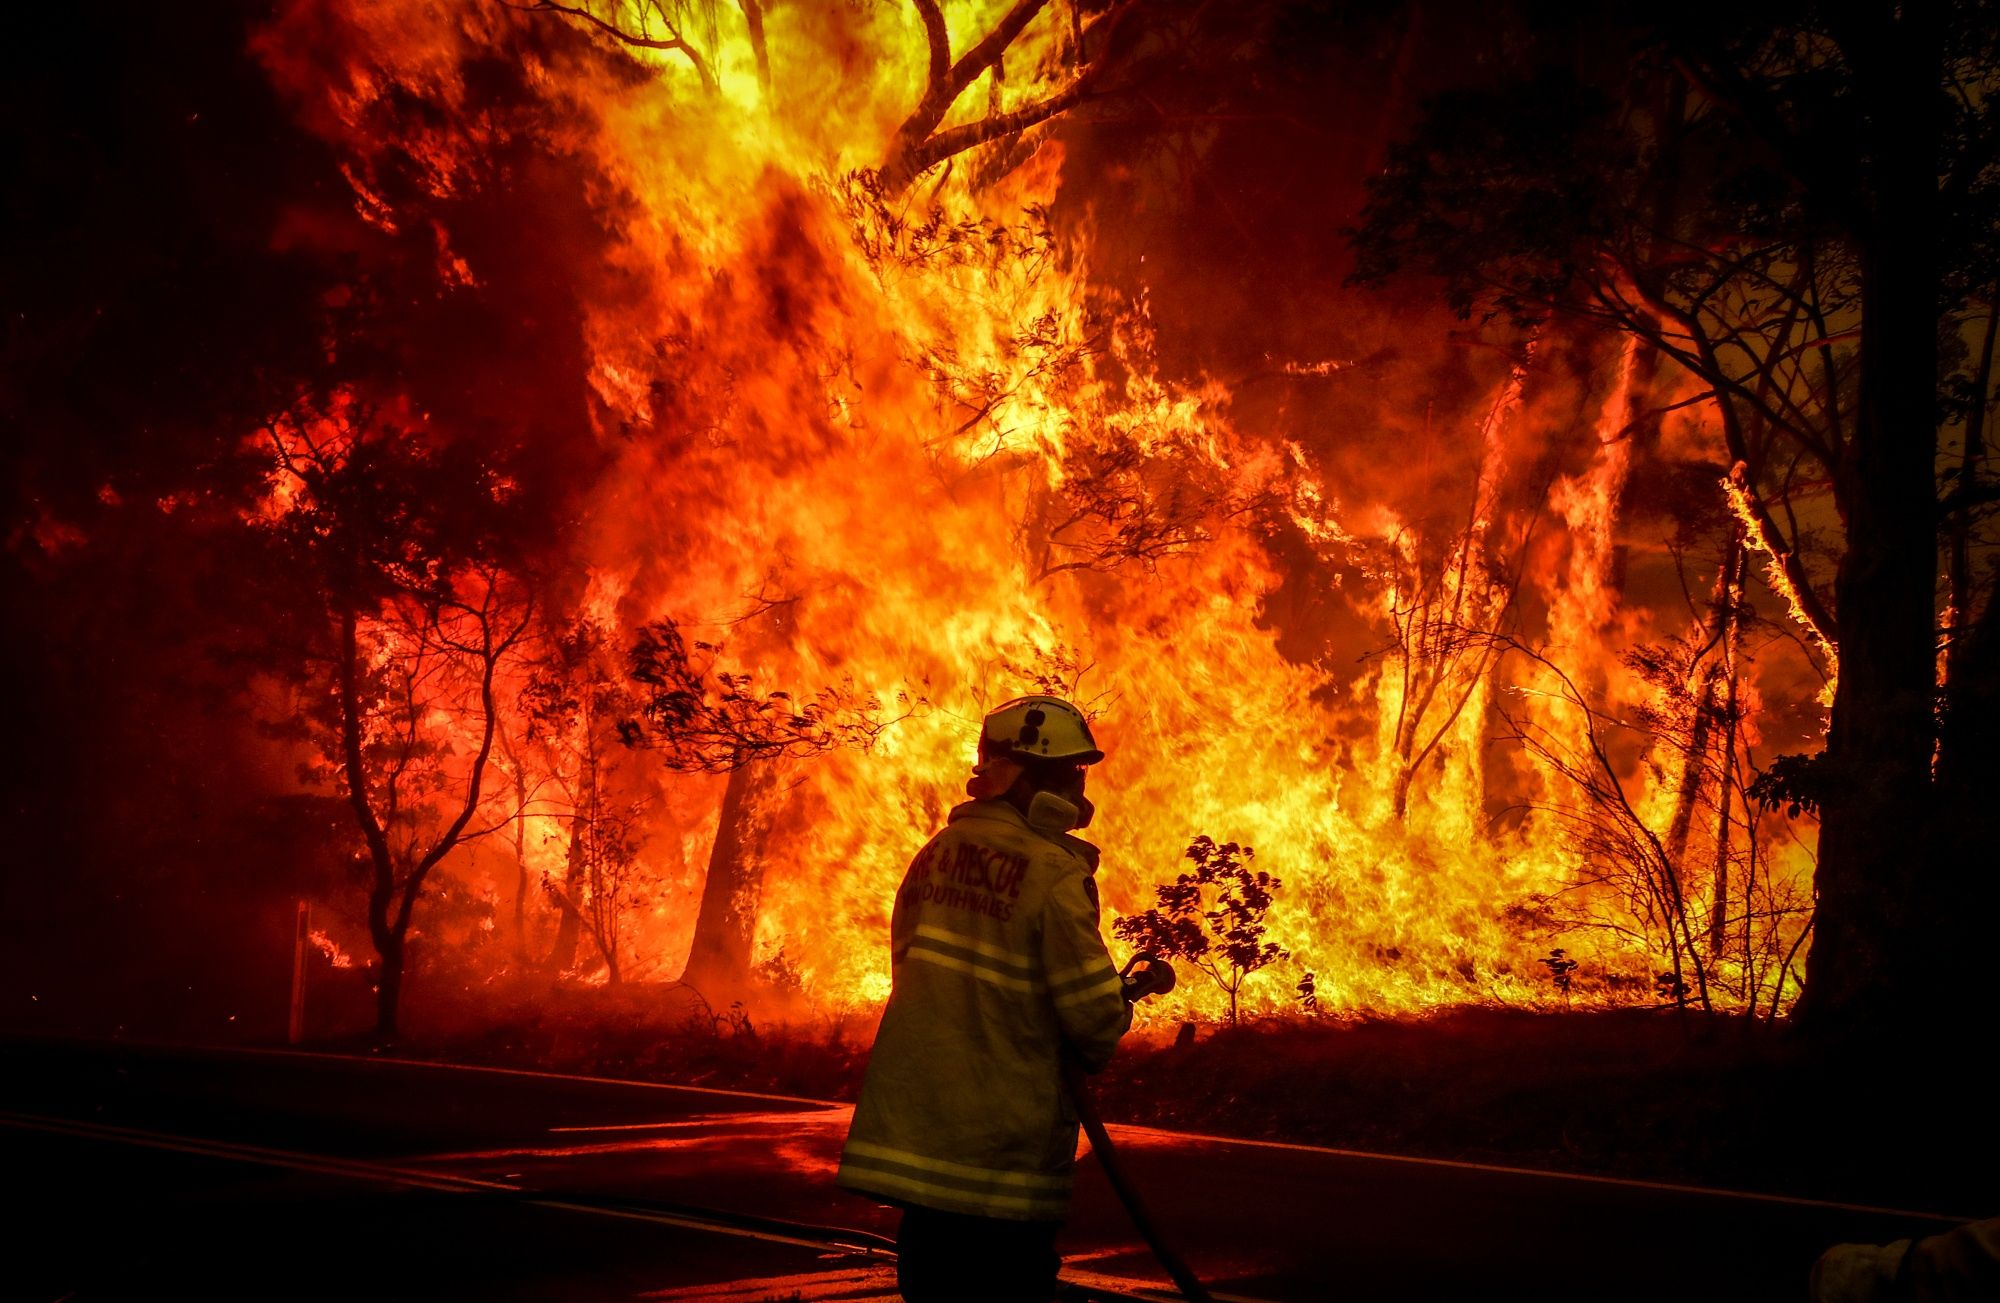 Sydney Faces 'Catastrophic' Fire Danger Amid Record Heat